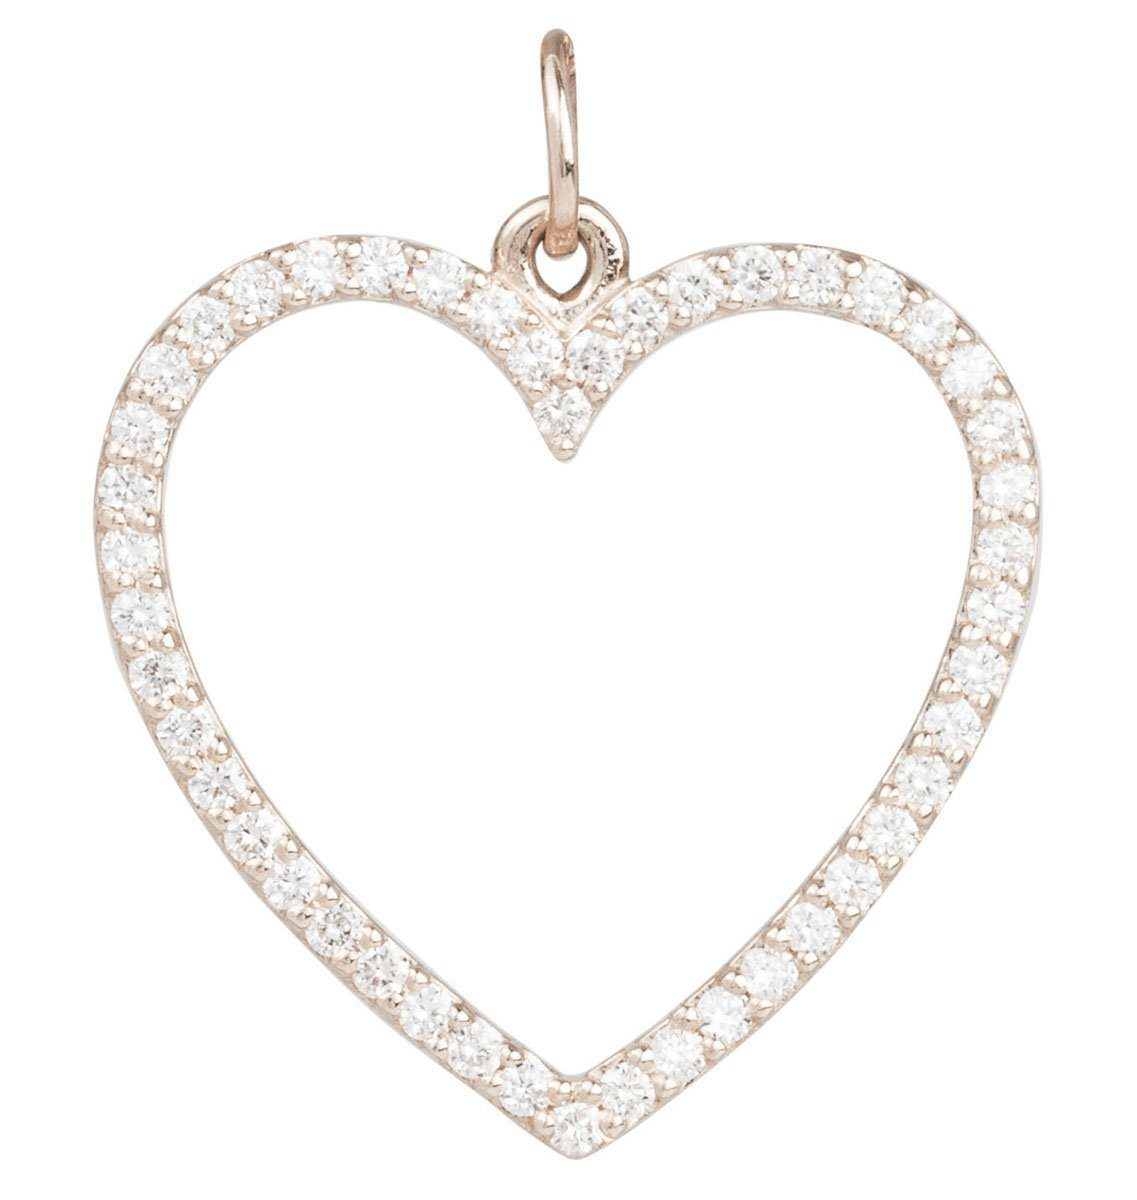 Large Heart Charm Pave Diamonds Jewelry Helen Ficalora 14k White Gold For Necklaces And Bracelets